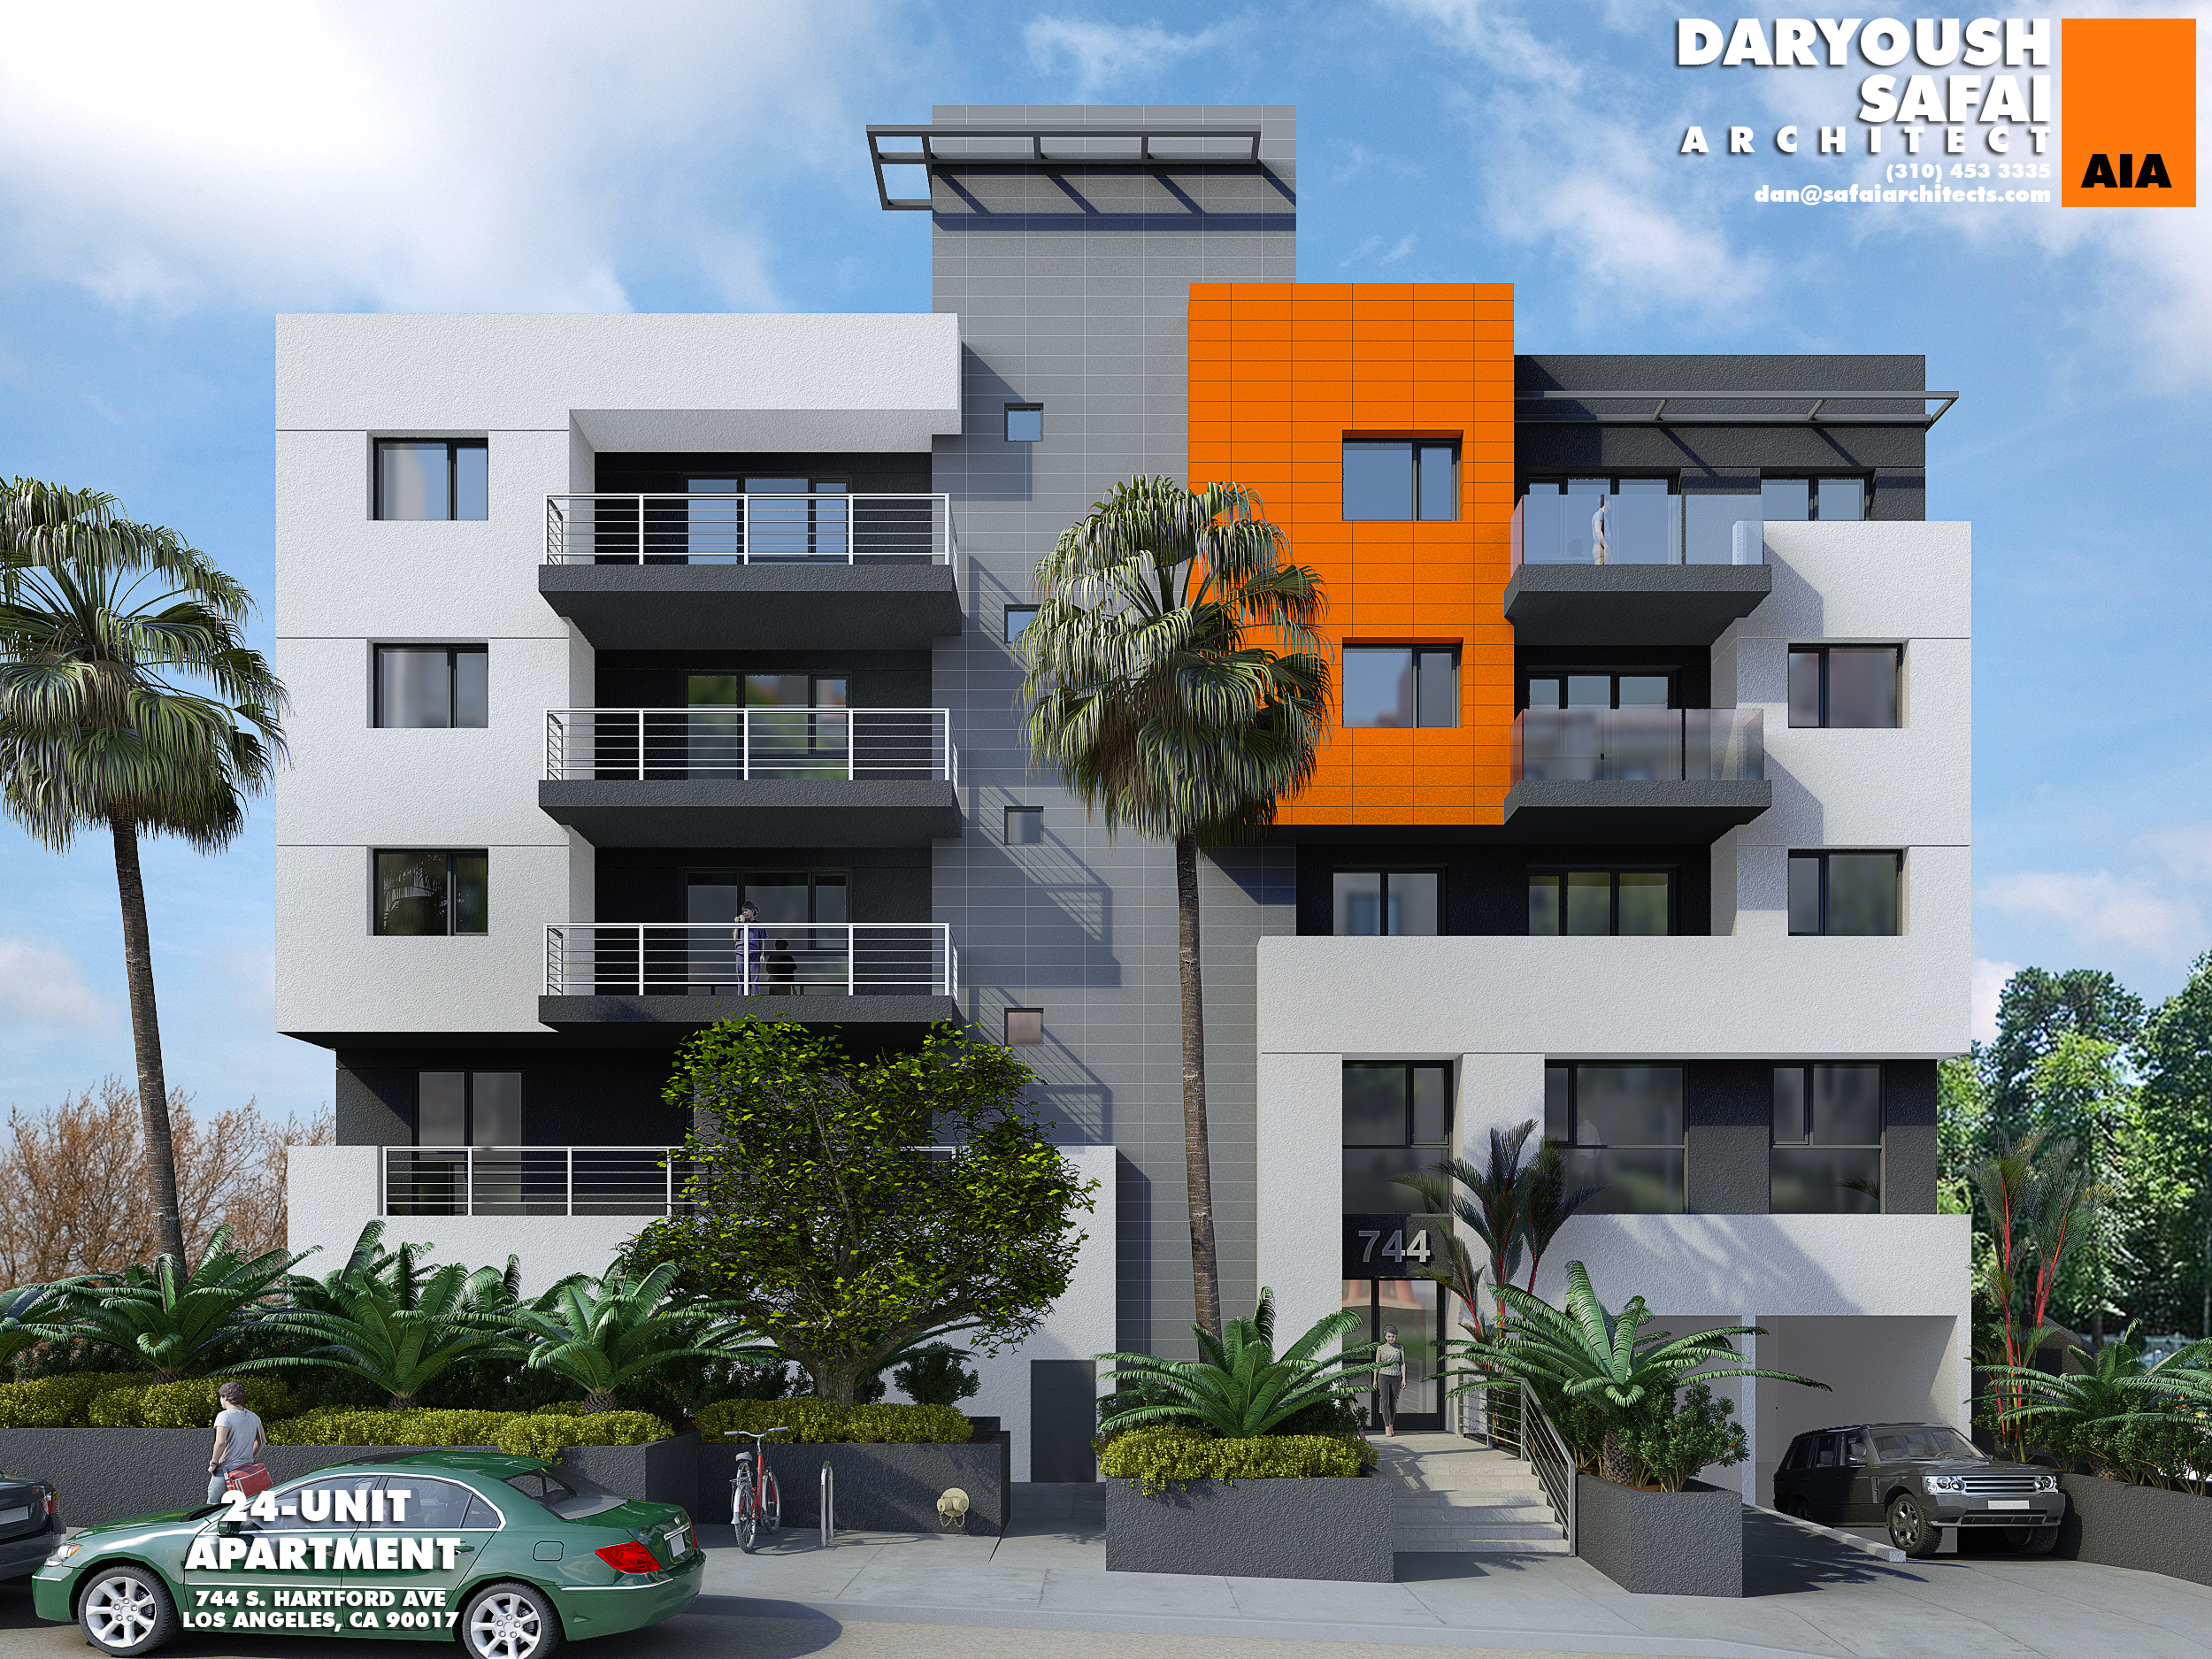 24 Units - 744 Hartford Ave, Los Angeles, CA 90017